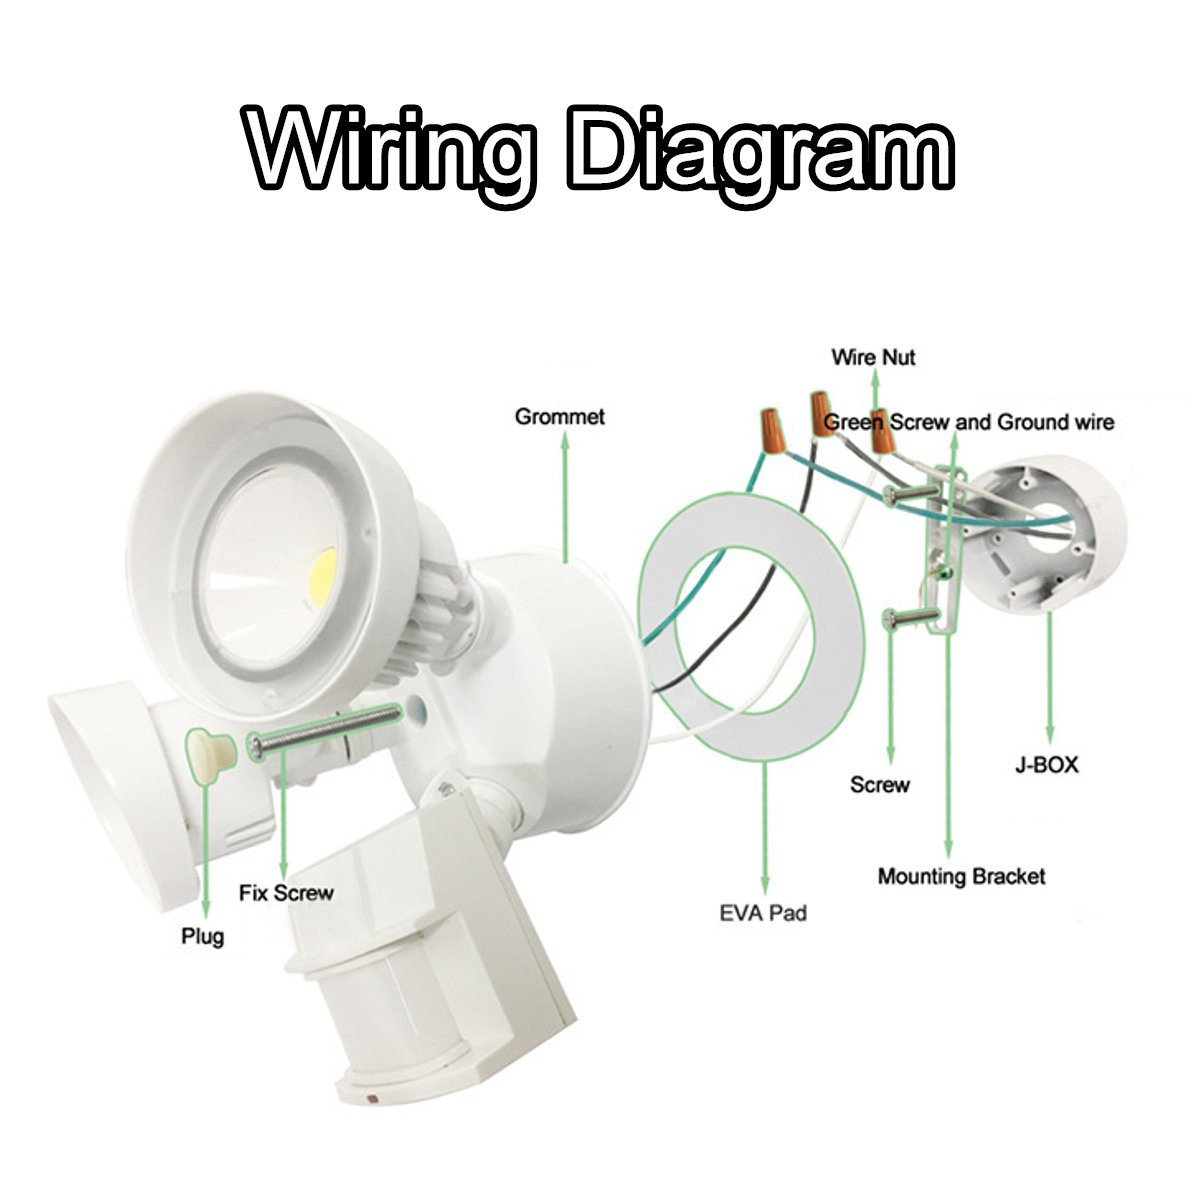 Wiring Diagram For Security Lighting